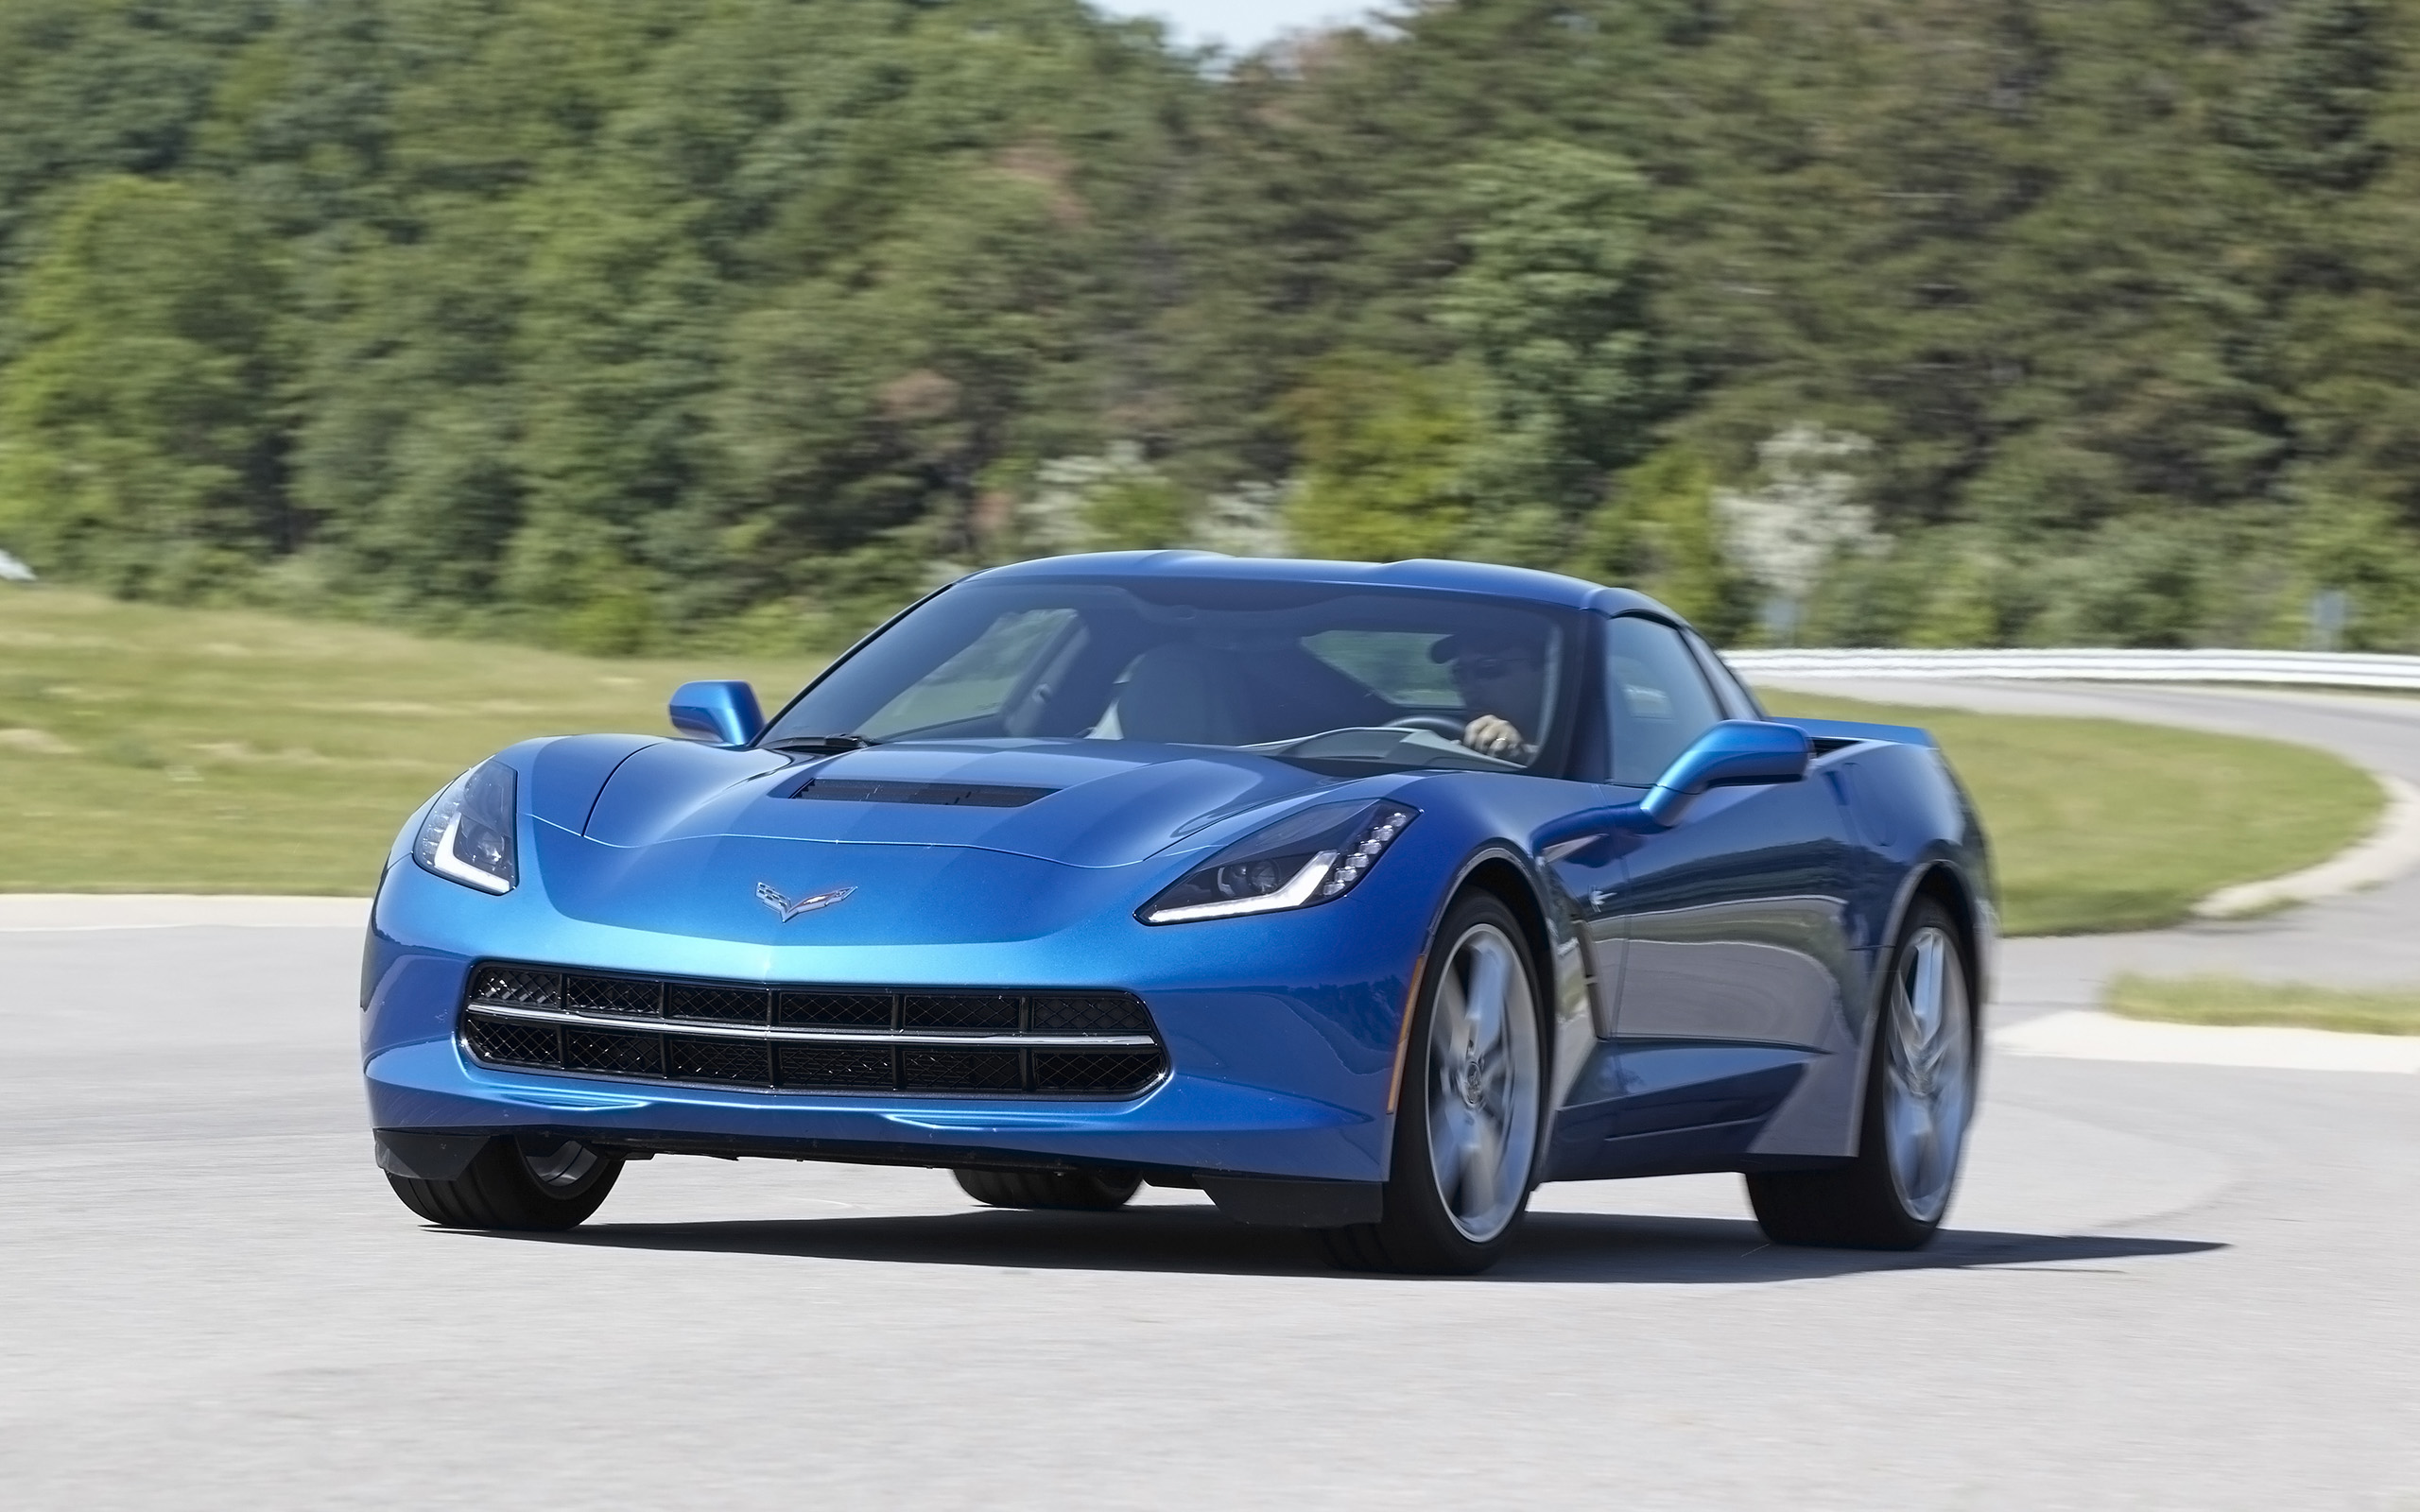 2014 corvette stingray blue 2014 Chevrolet Corvette Stingray Z51 - Blue - 5 - 2560x1600